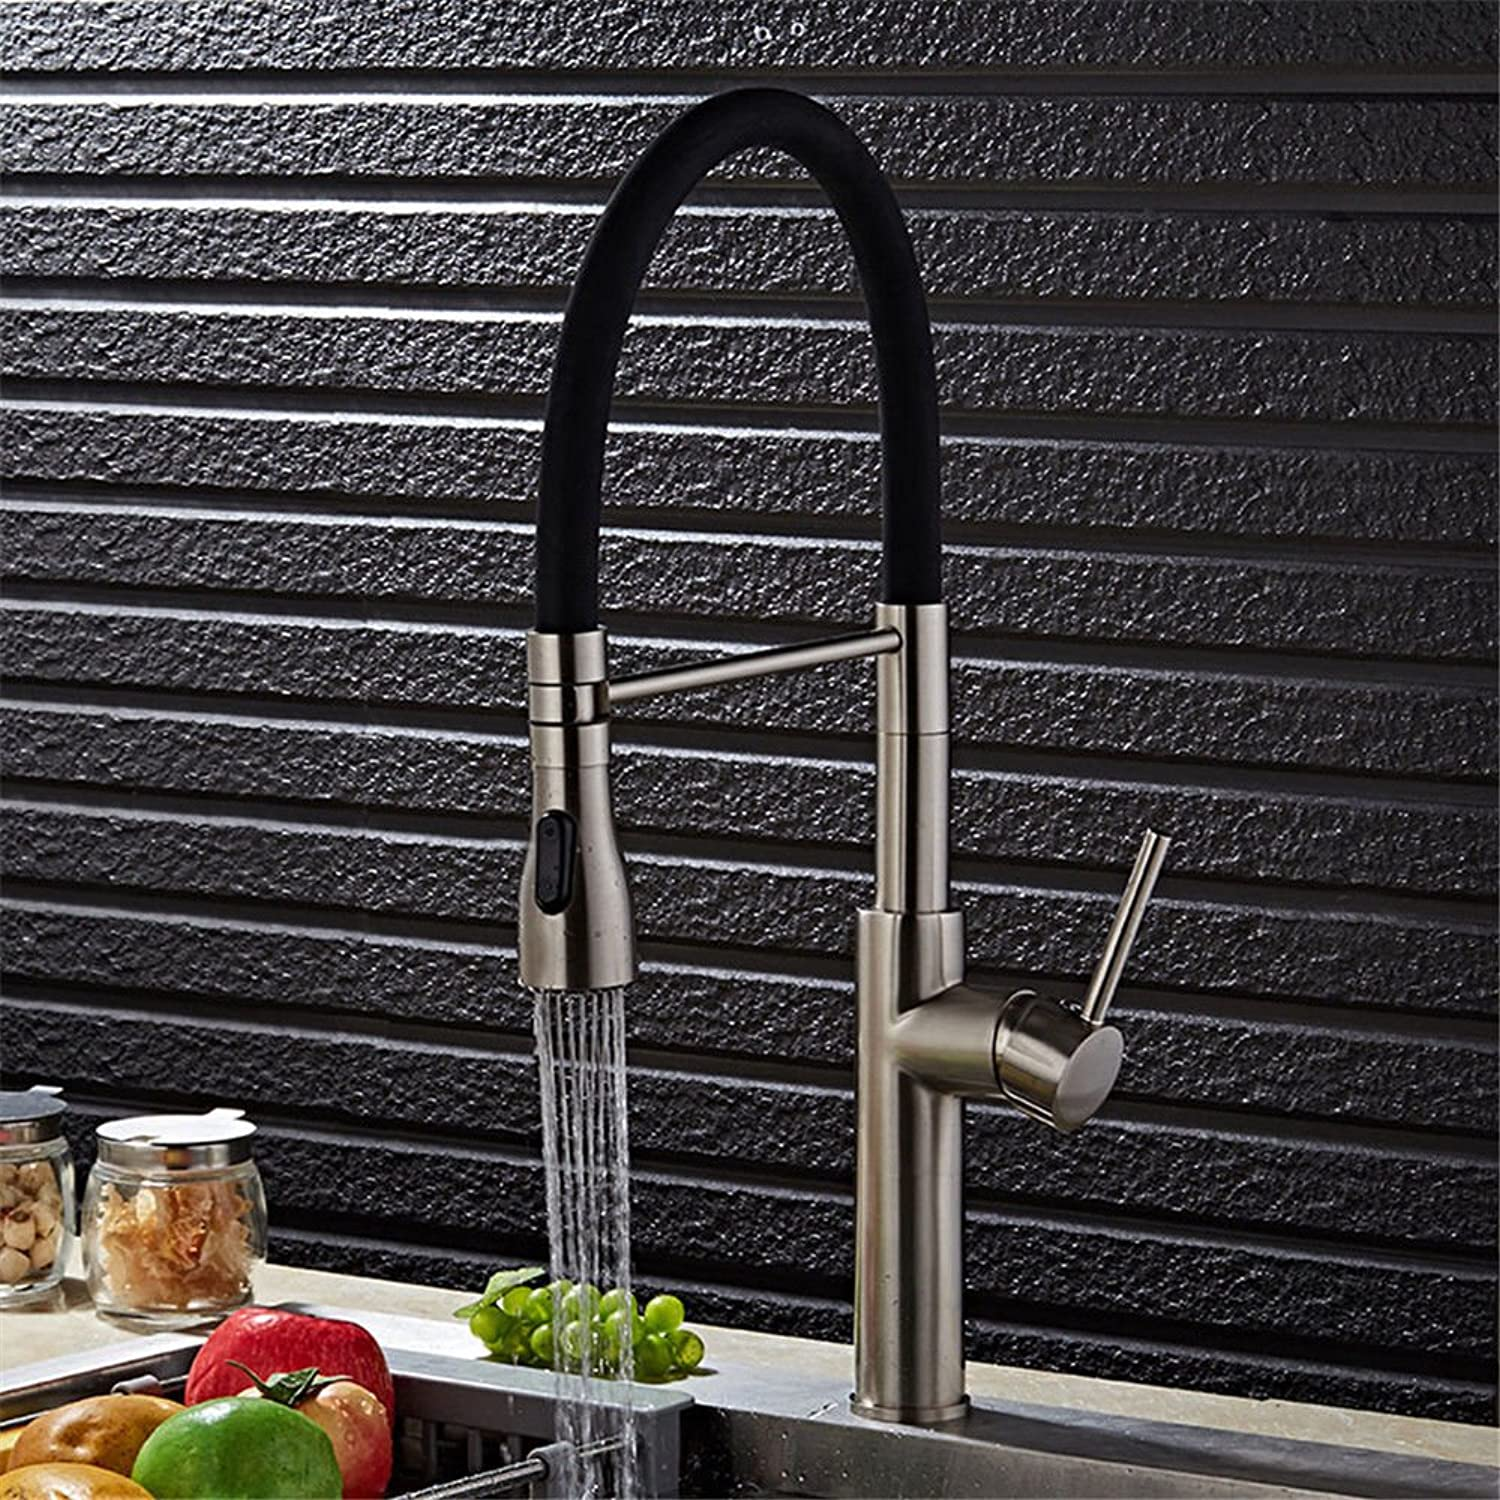 Kitchen Faucet Sink Mixer taps s Telescopic Brushed Silver Sink Faucet with Pull-Out spout spout redating Head hot and Cold Sink Mixer Sink Faucet